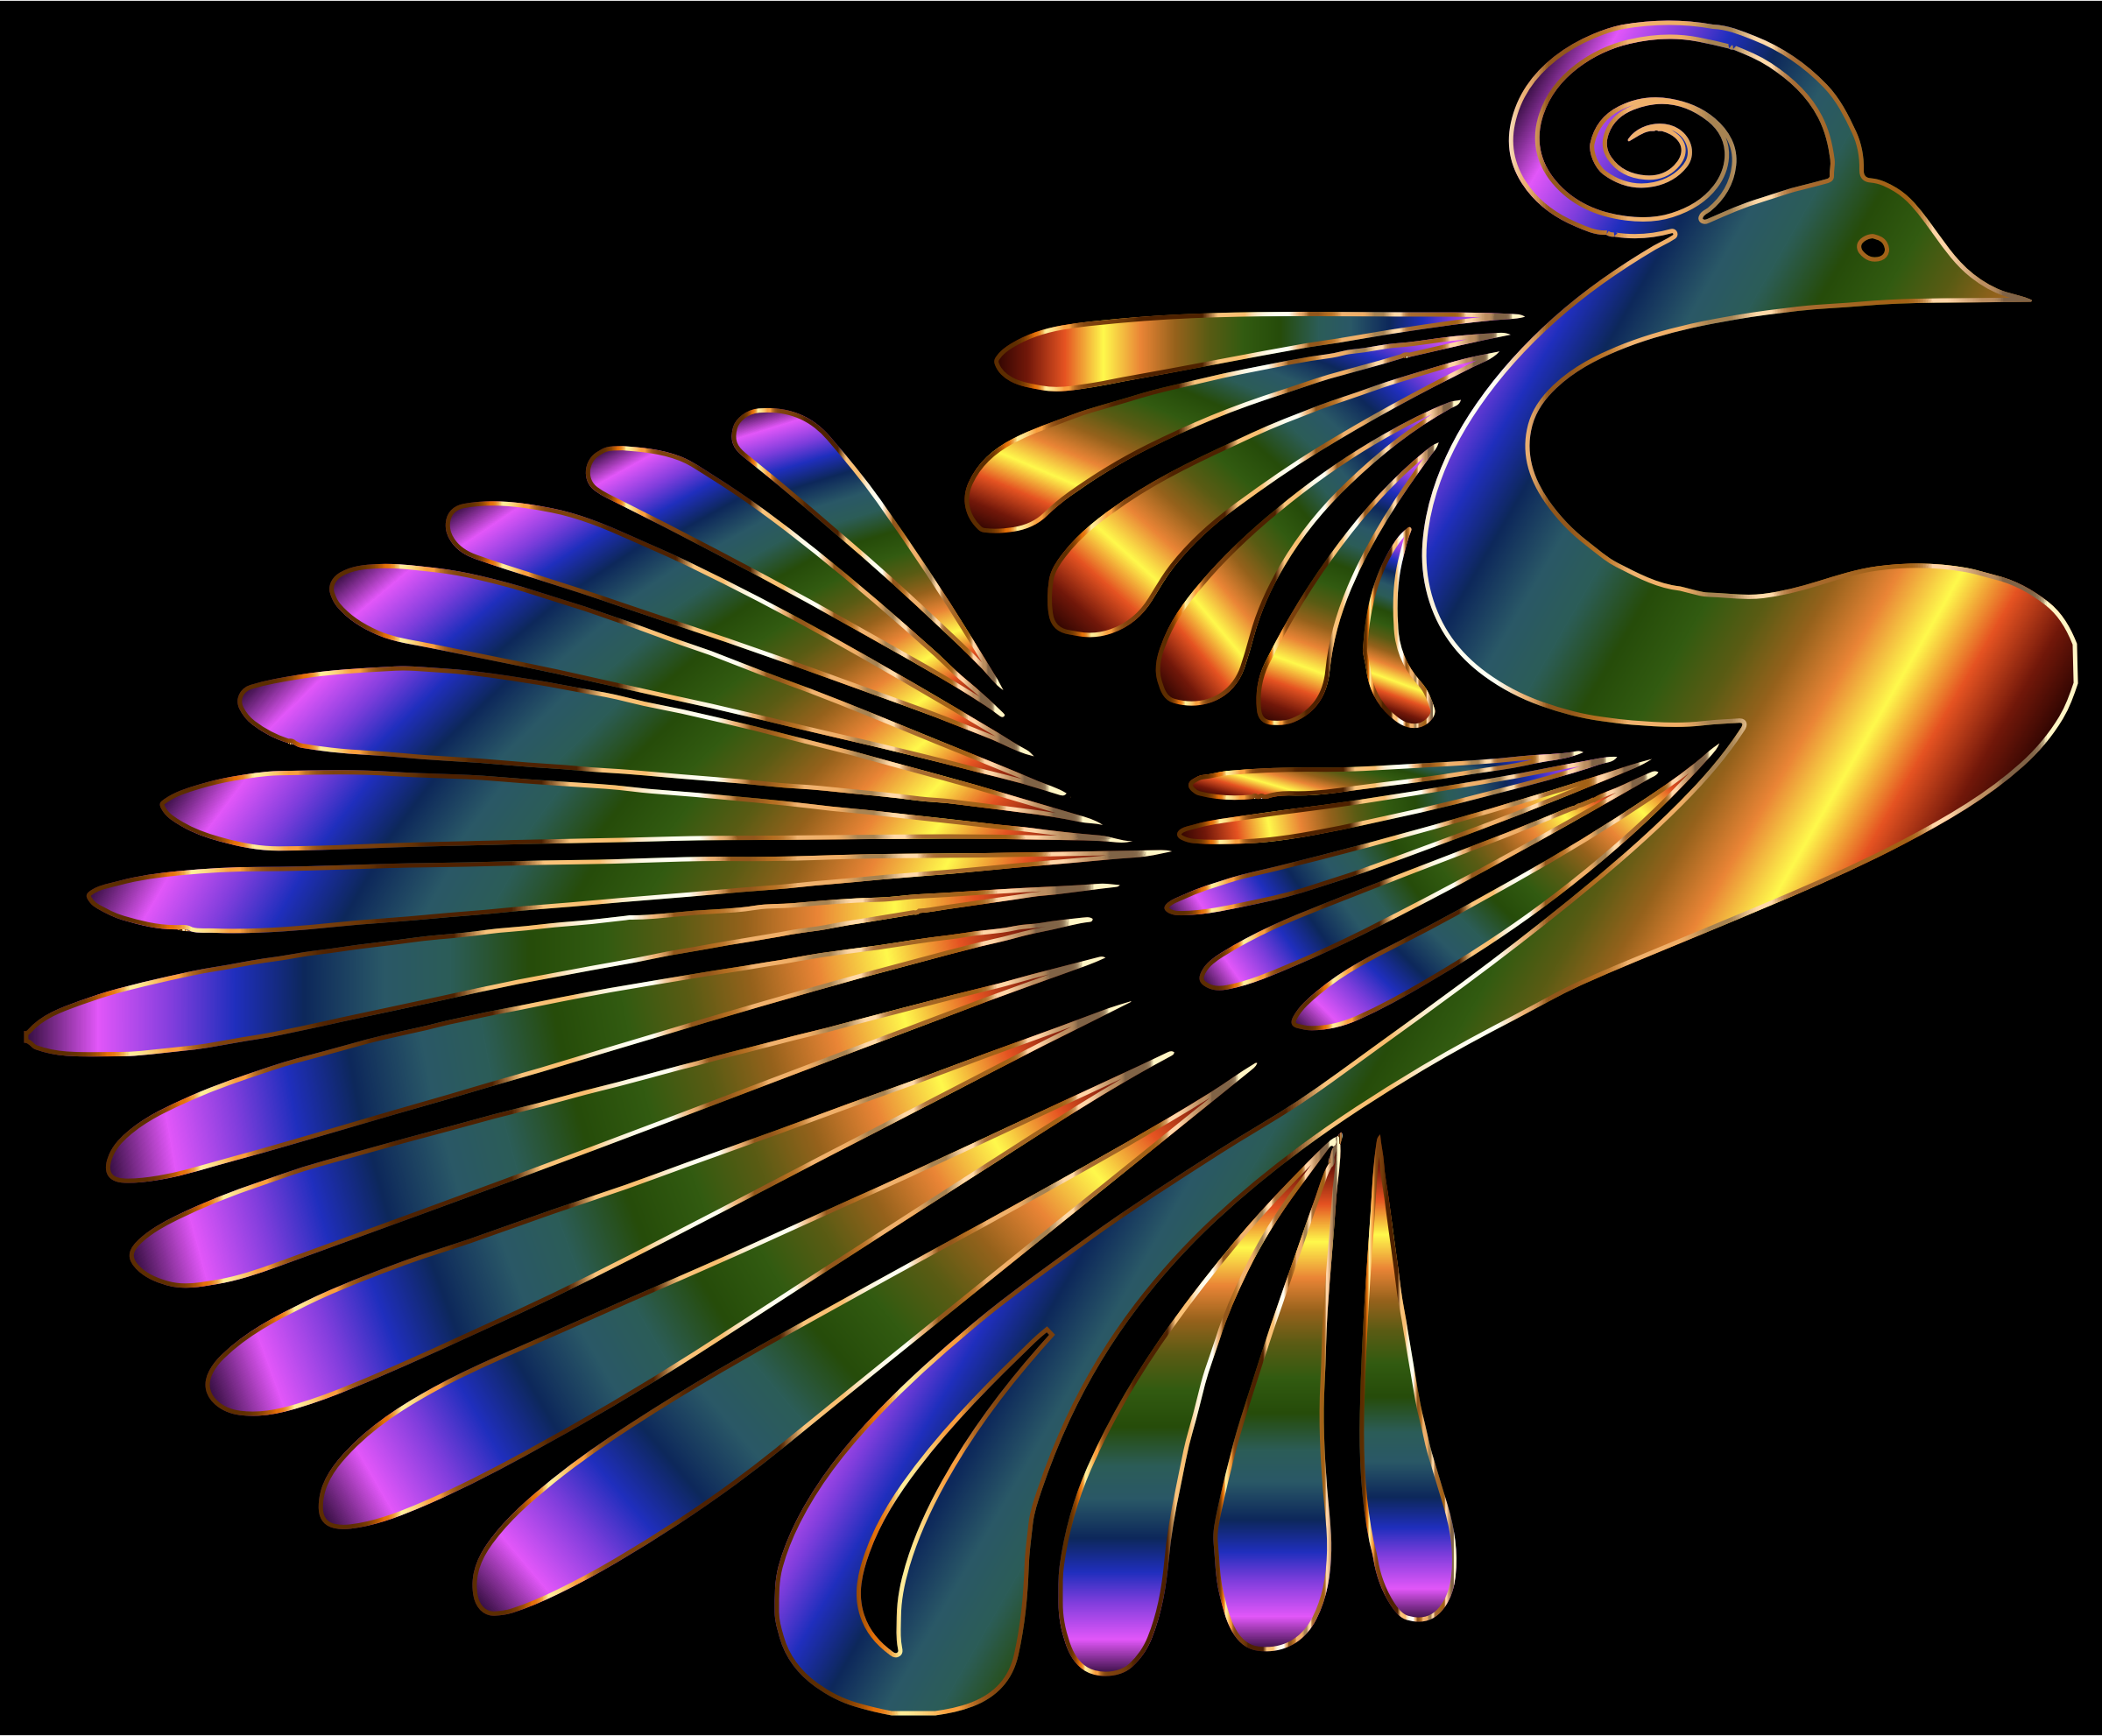 Colorful Stylized Peacock 5 by GDJ